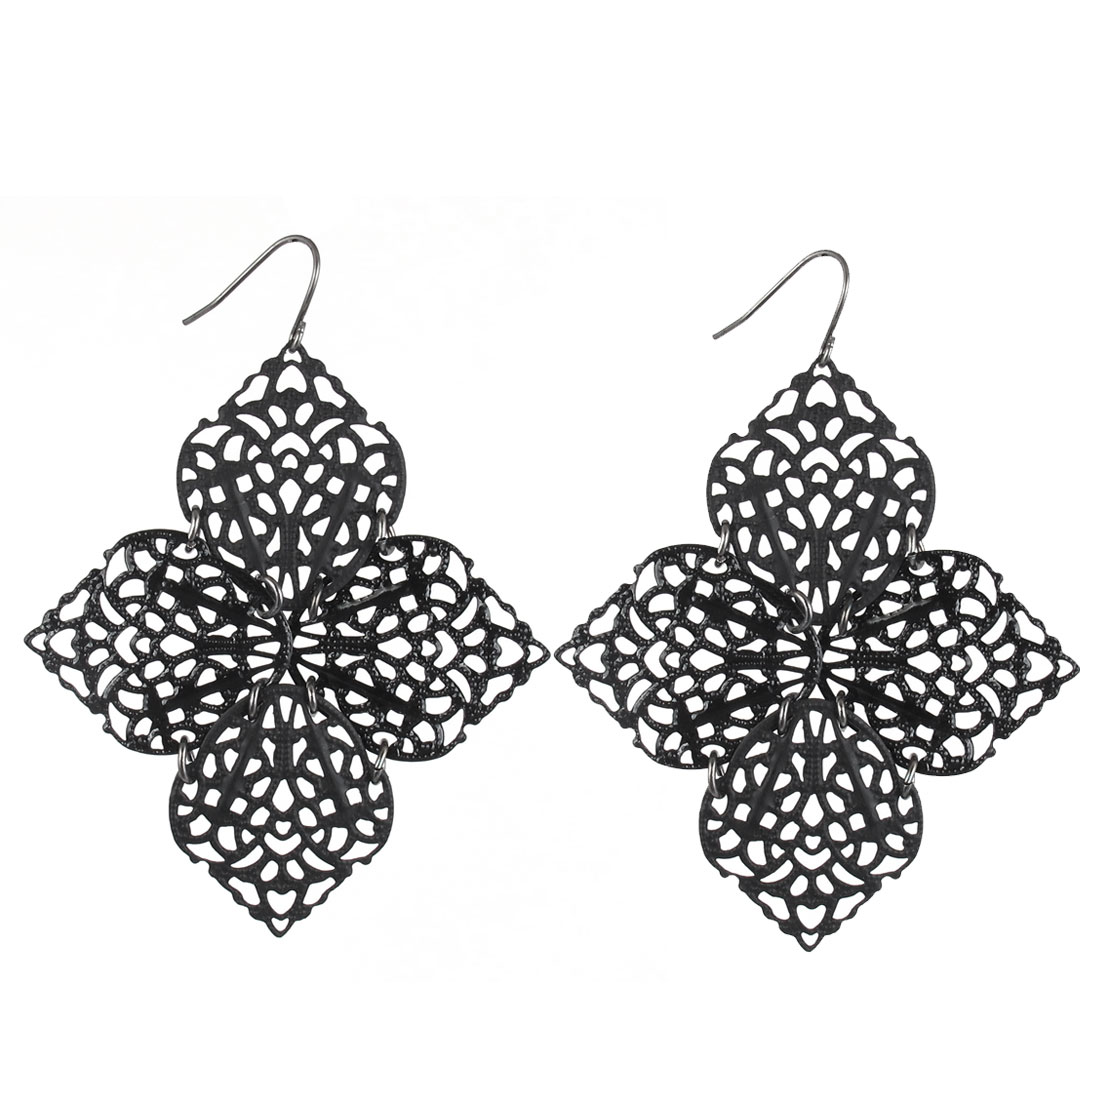 "2.8"" Length Black Metal Four Leaves Shape Folded Net Structure Dangling Pendant Hook Earrings Earbobs Pair for Lady Women"